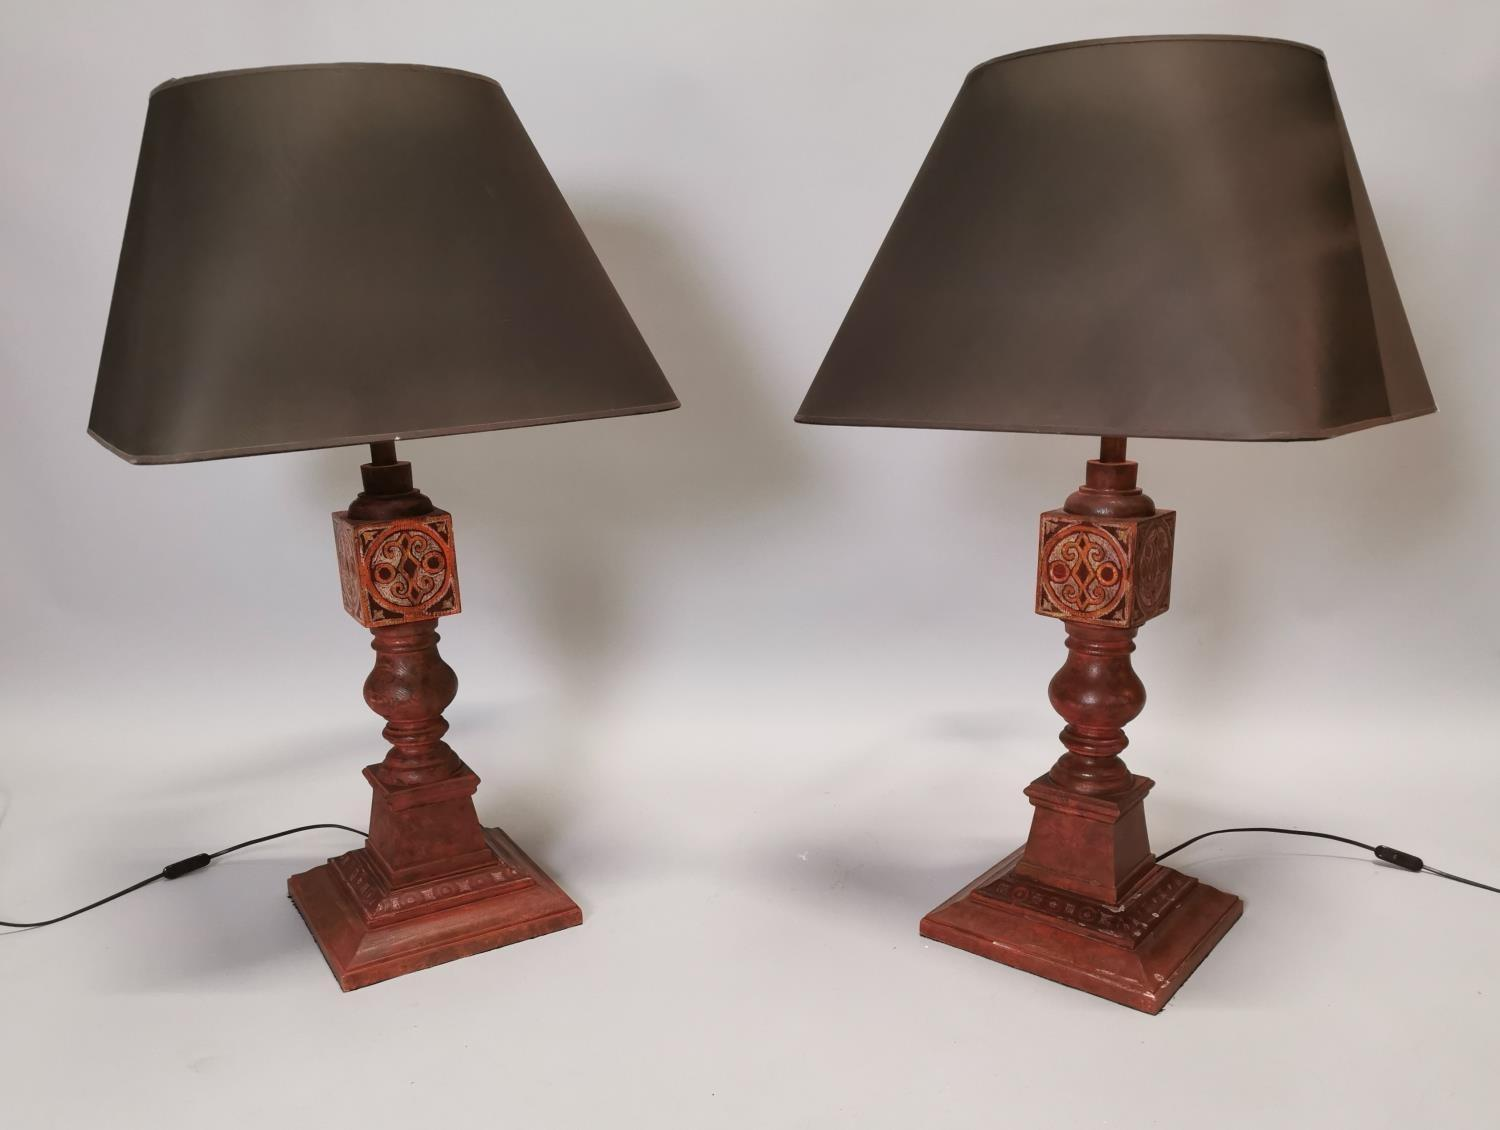 Pair of hand painted pine table lamps